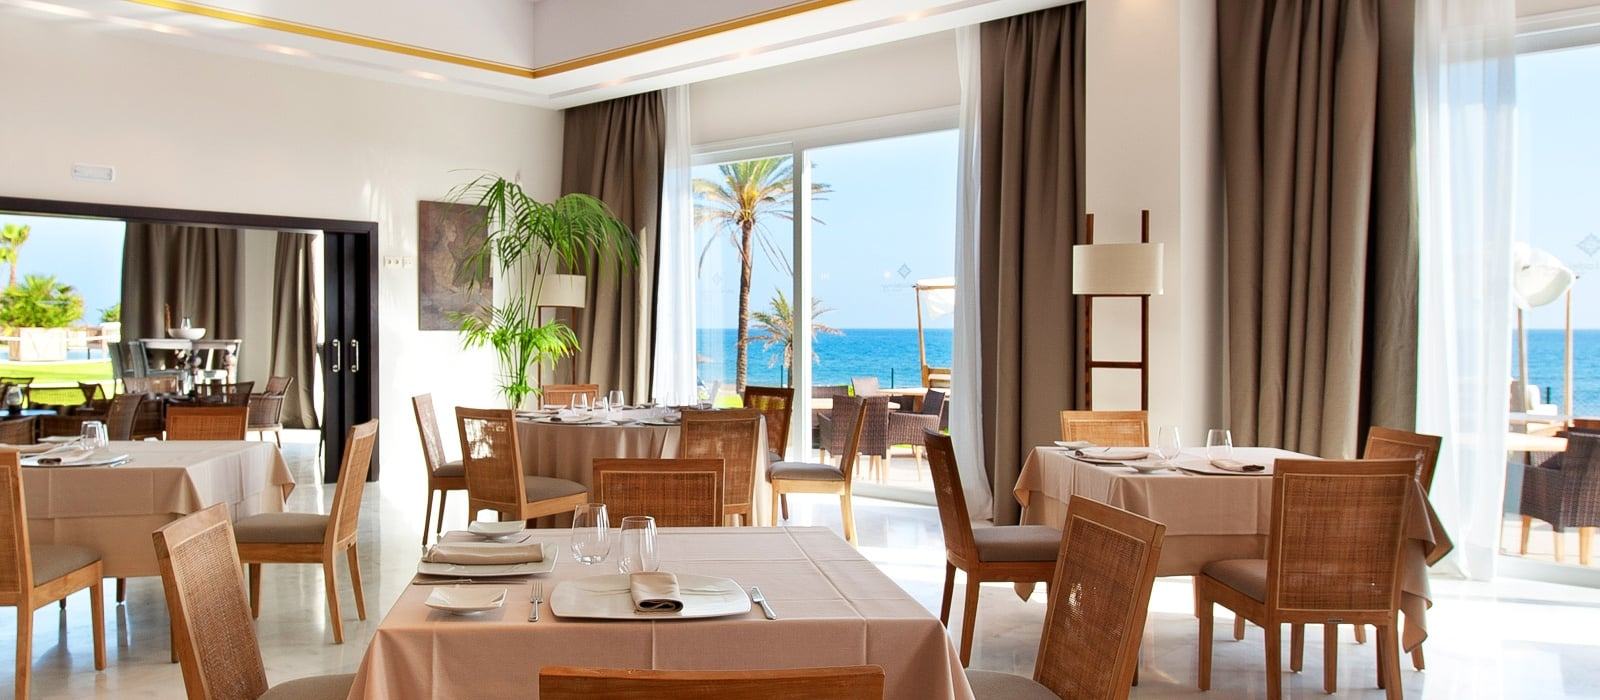 Beach Club Hotel Vincci Estrella del Mar - Restaurante Beach Club Día